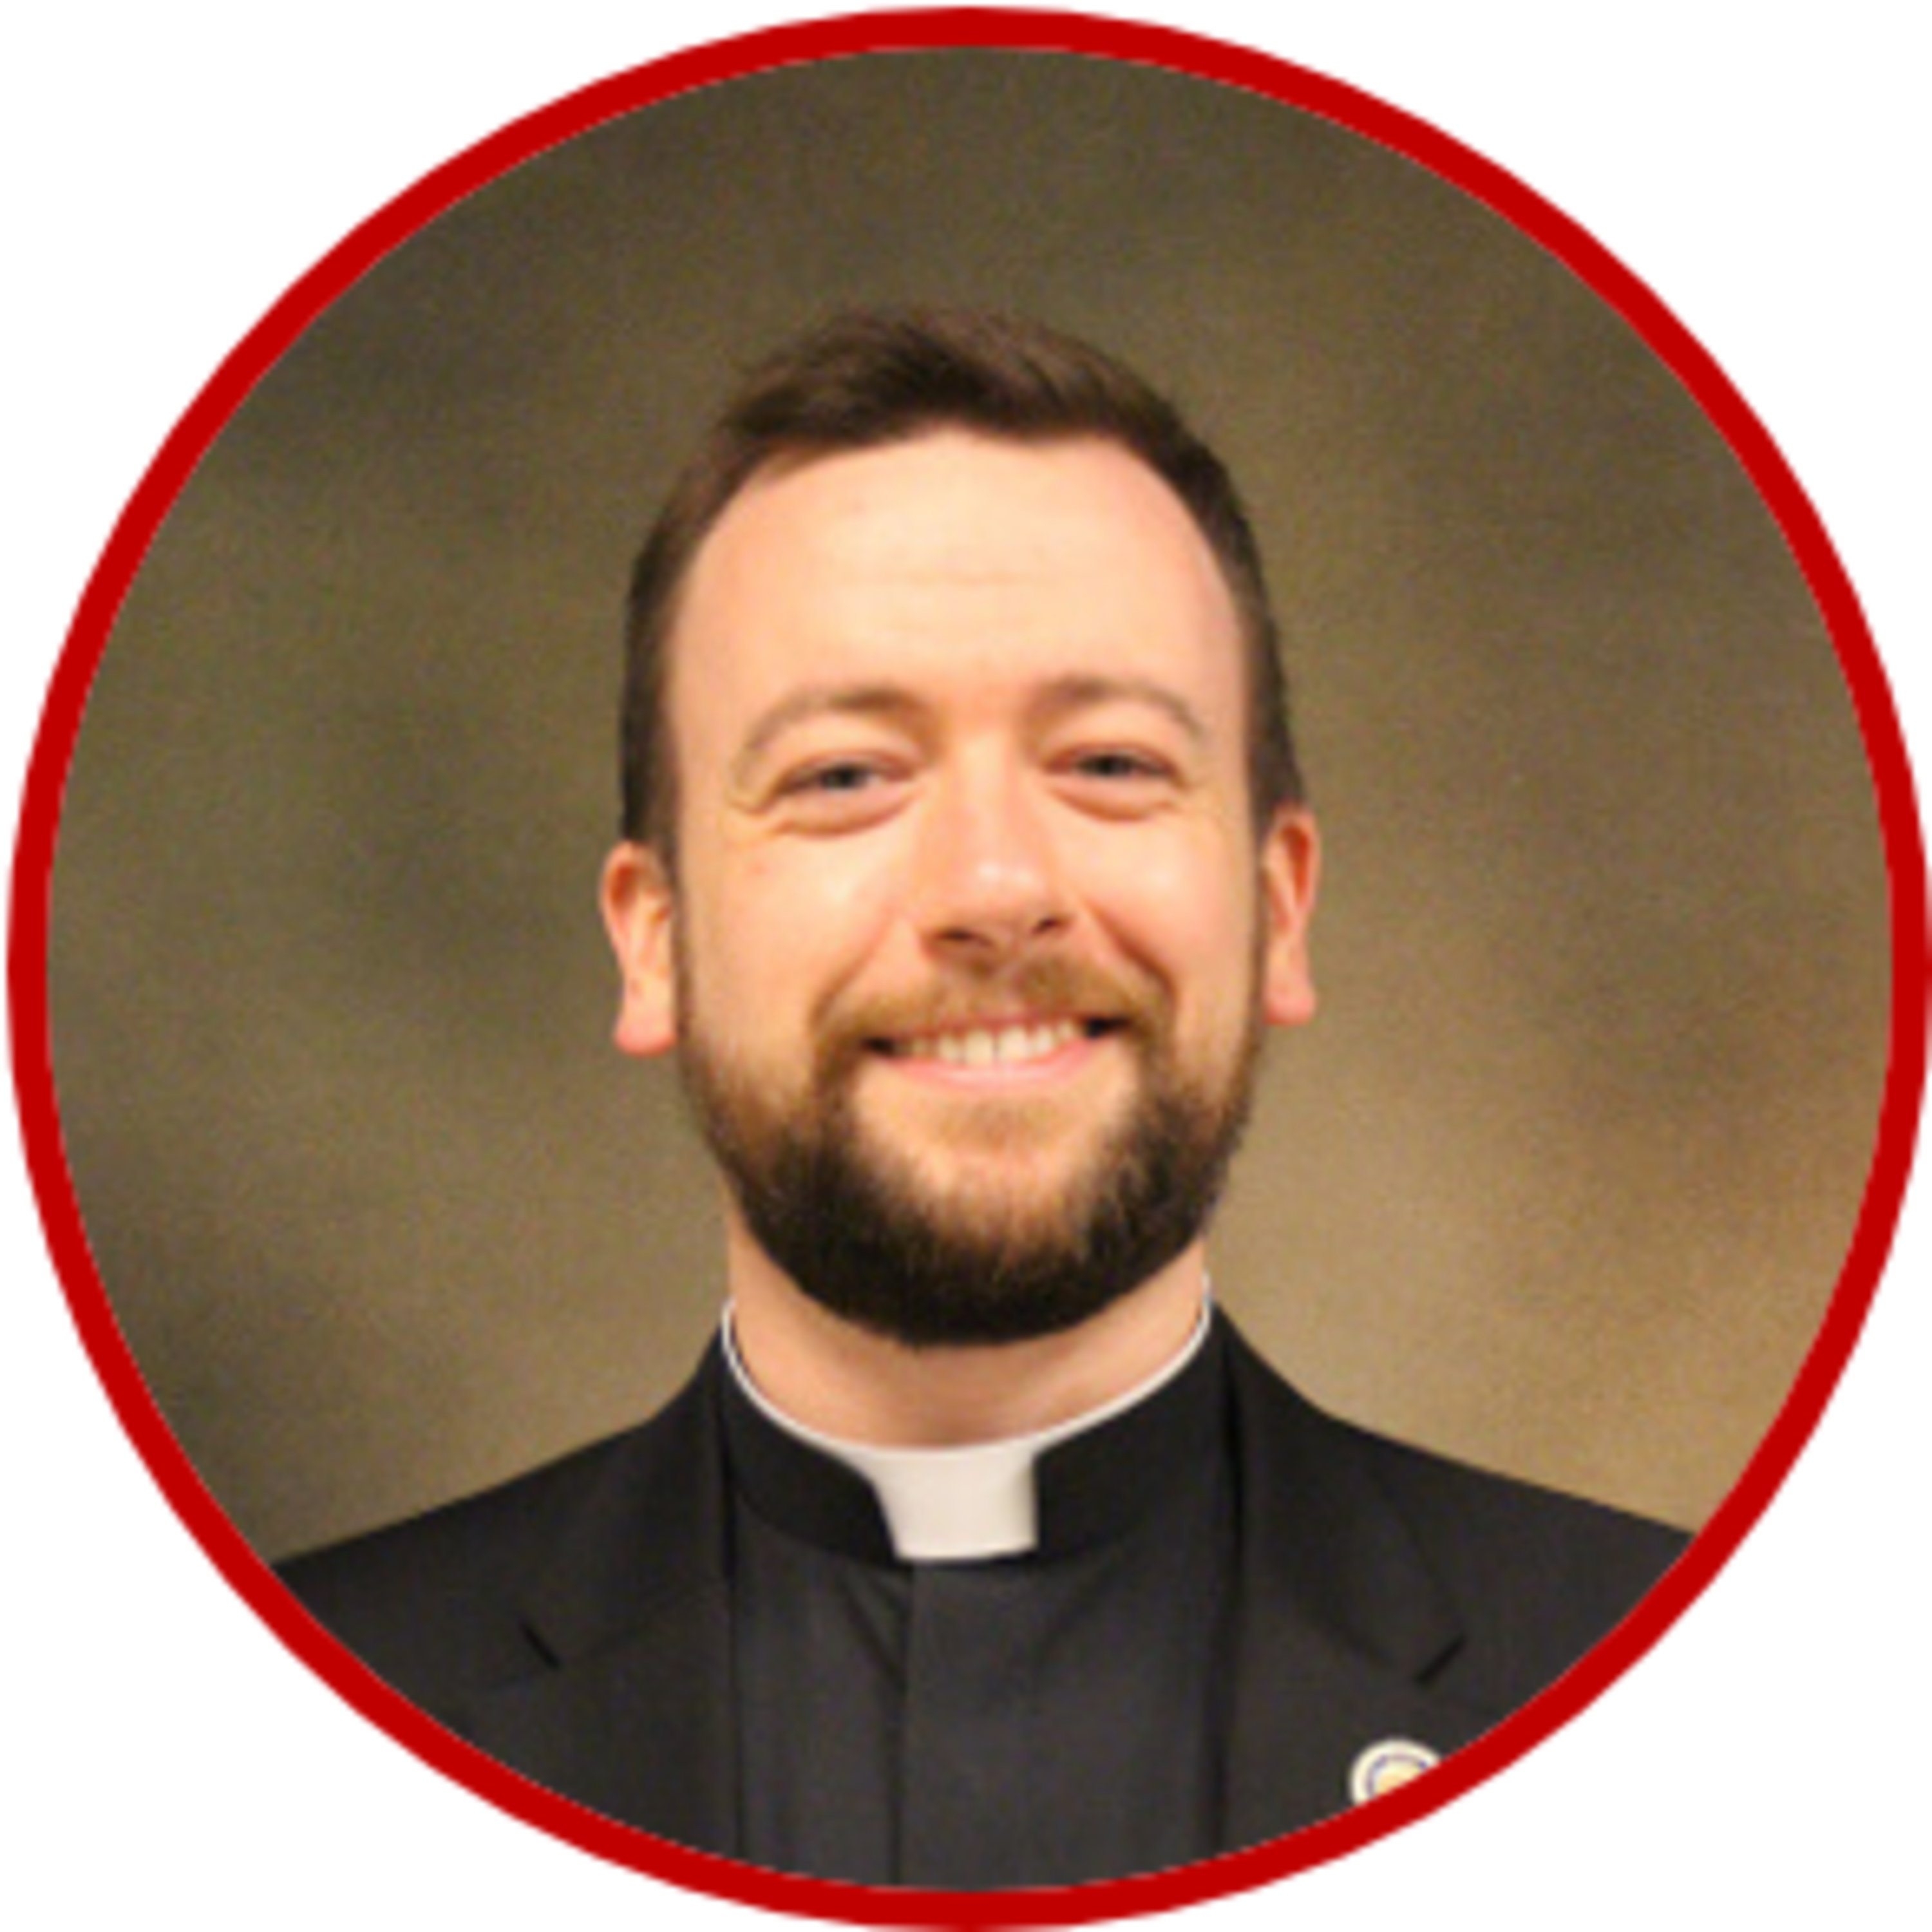 16th Sunday in Ordinary Time: Fr. Coady Owens